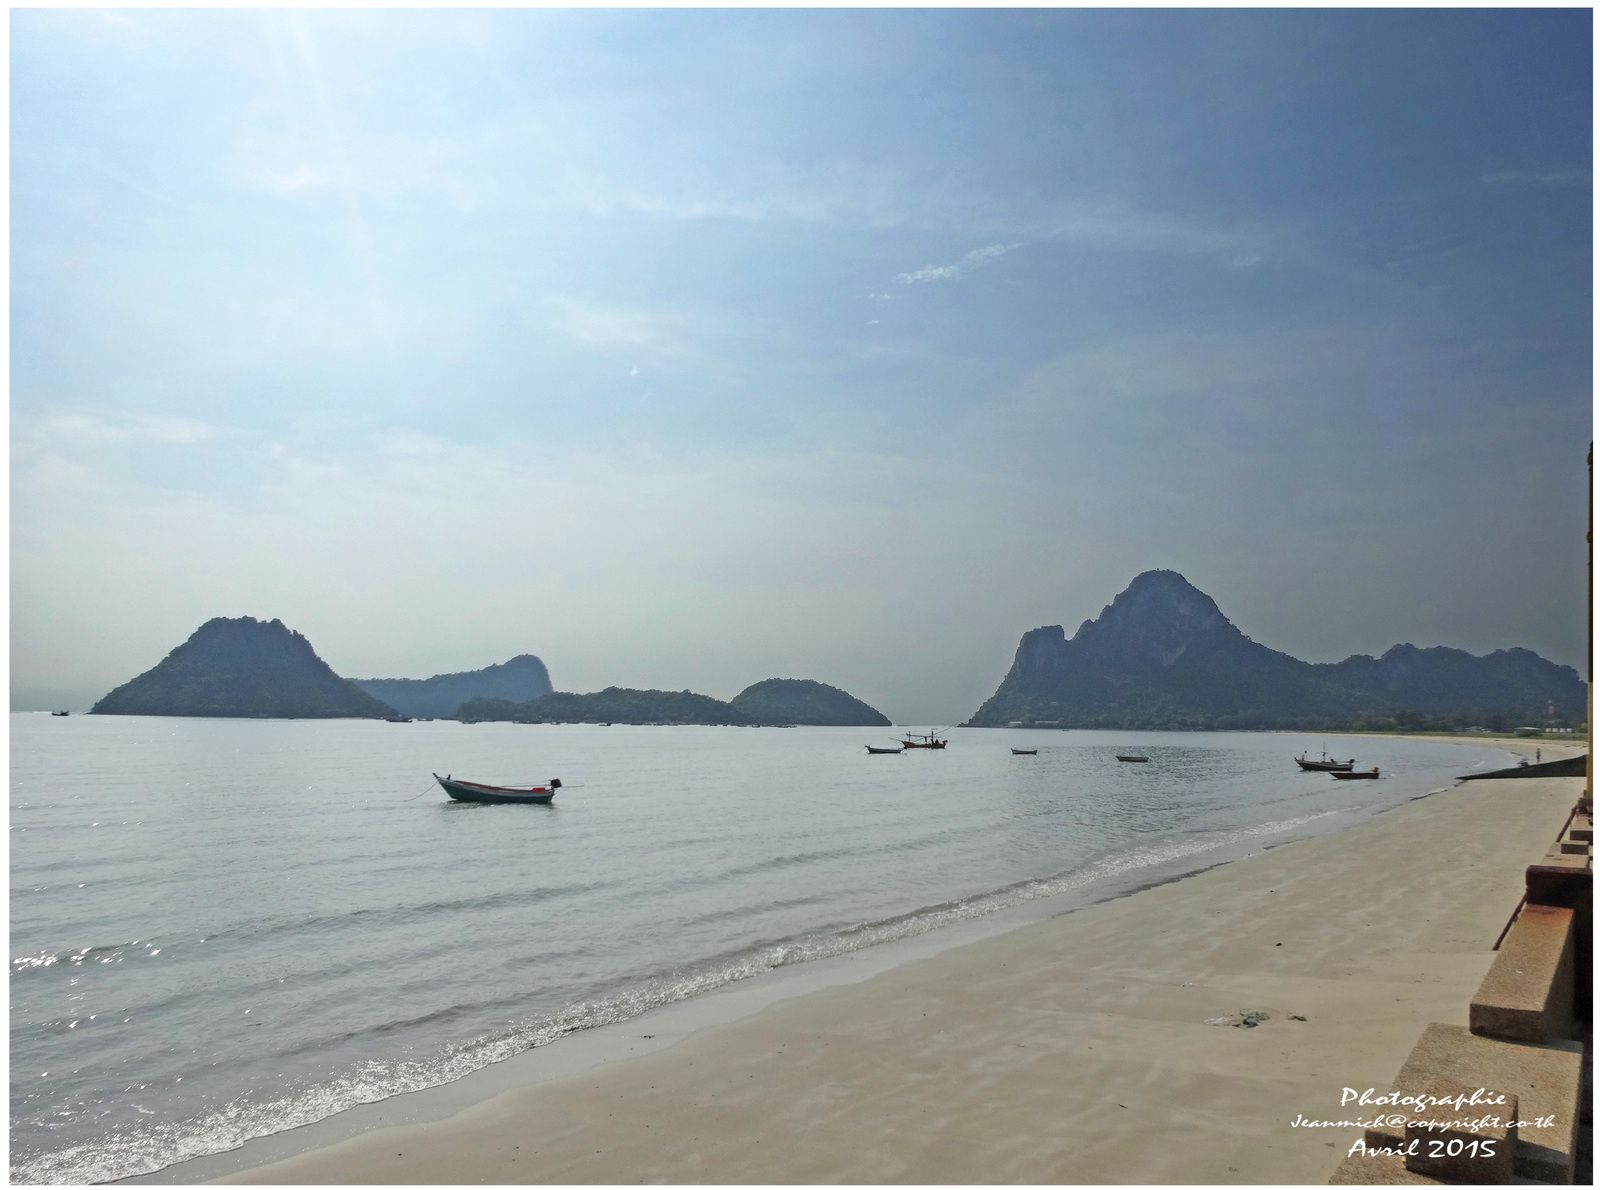 Seconde étape, Prachuap Kiri Khan